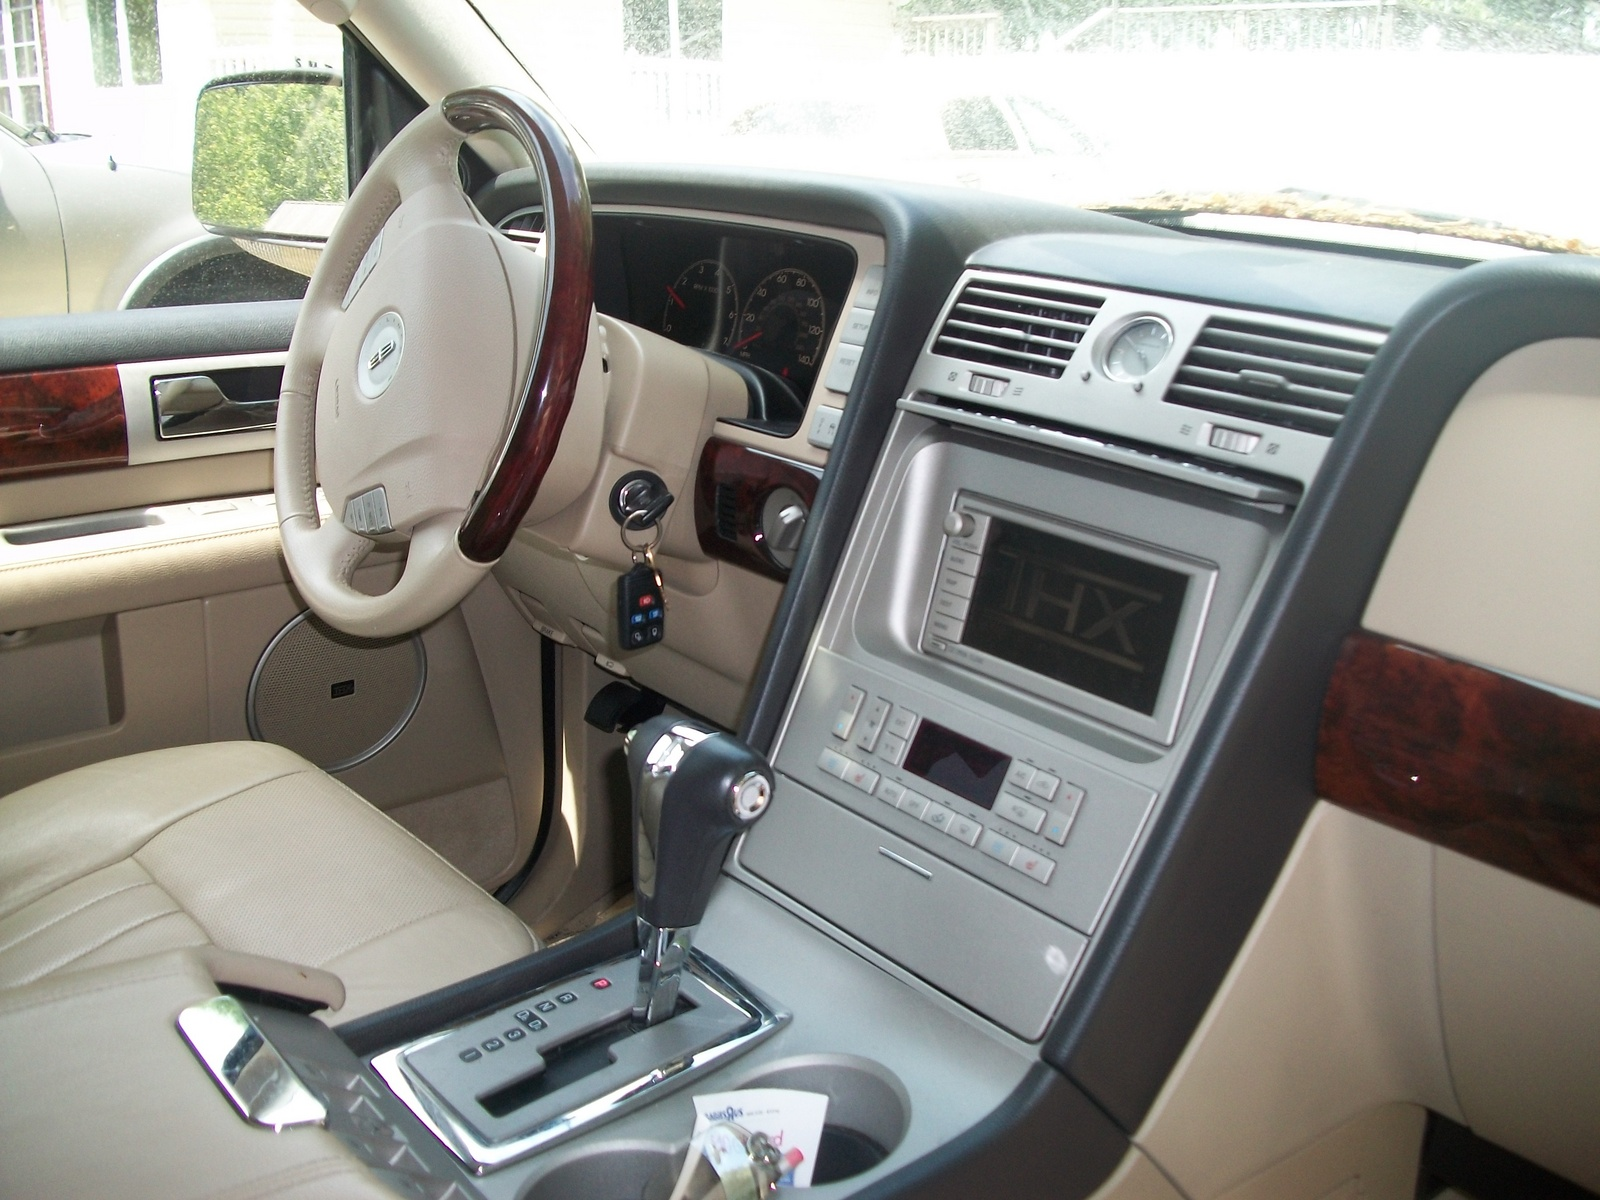 lincoln 2013 pay moreget parts use a 1999 navigator interior. Black Bedroom Furniture Sets. Home Design Ideas